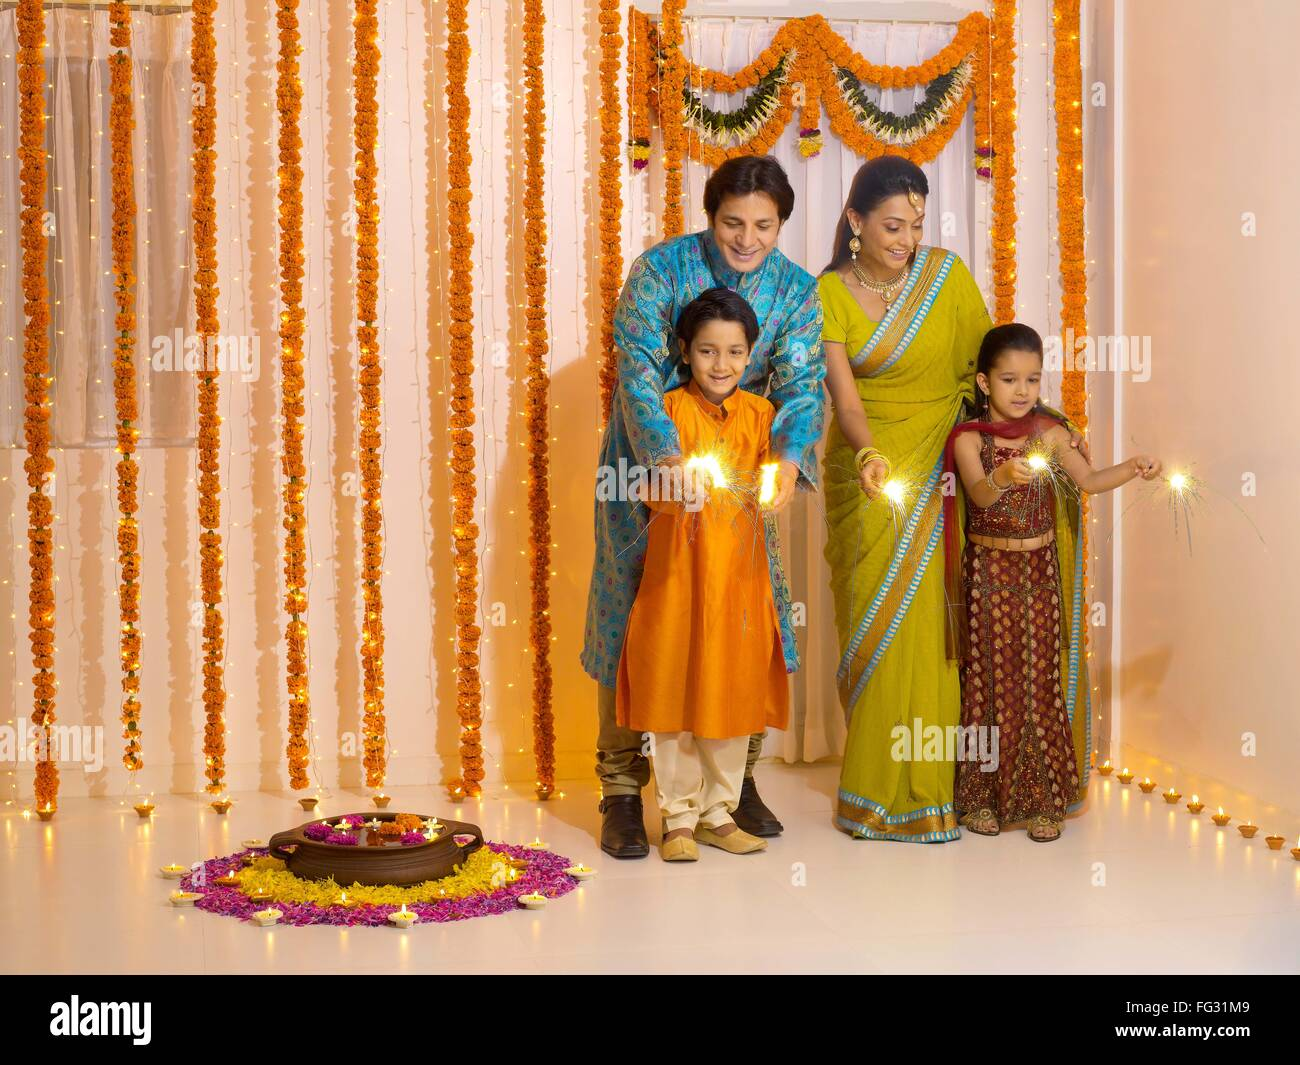 Indian family celebrating Diwali festival of lights India - model released MR#779P, MR#779Q, MR#779R, MR#779S - Stock Image